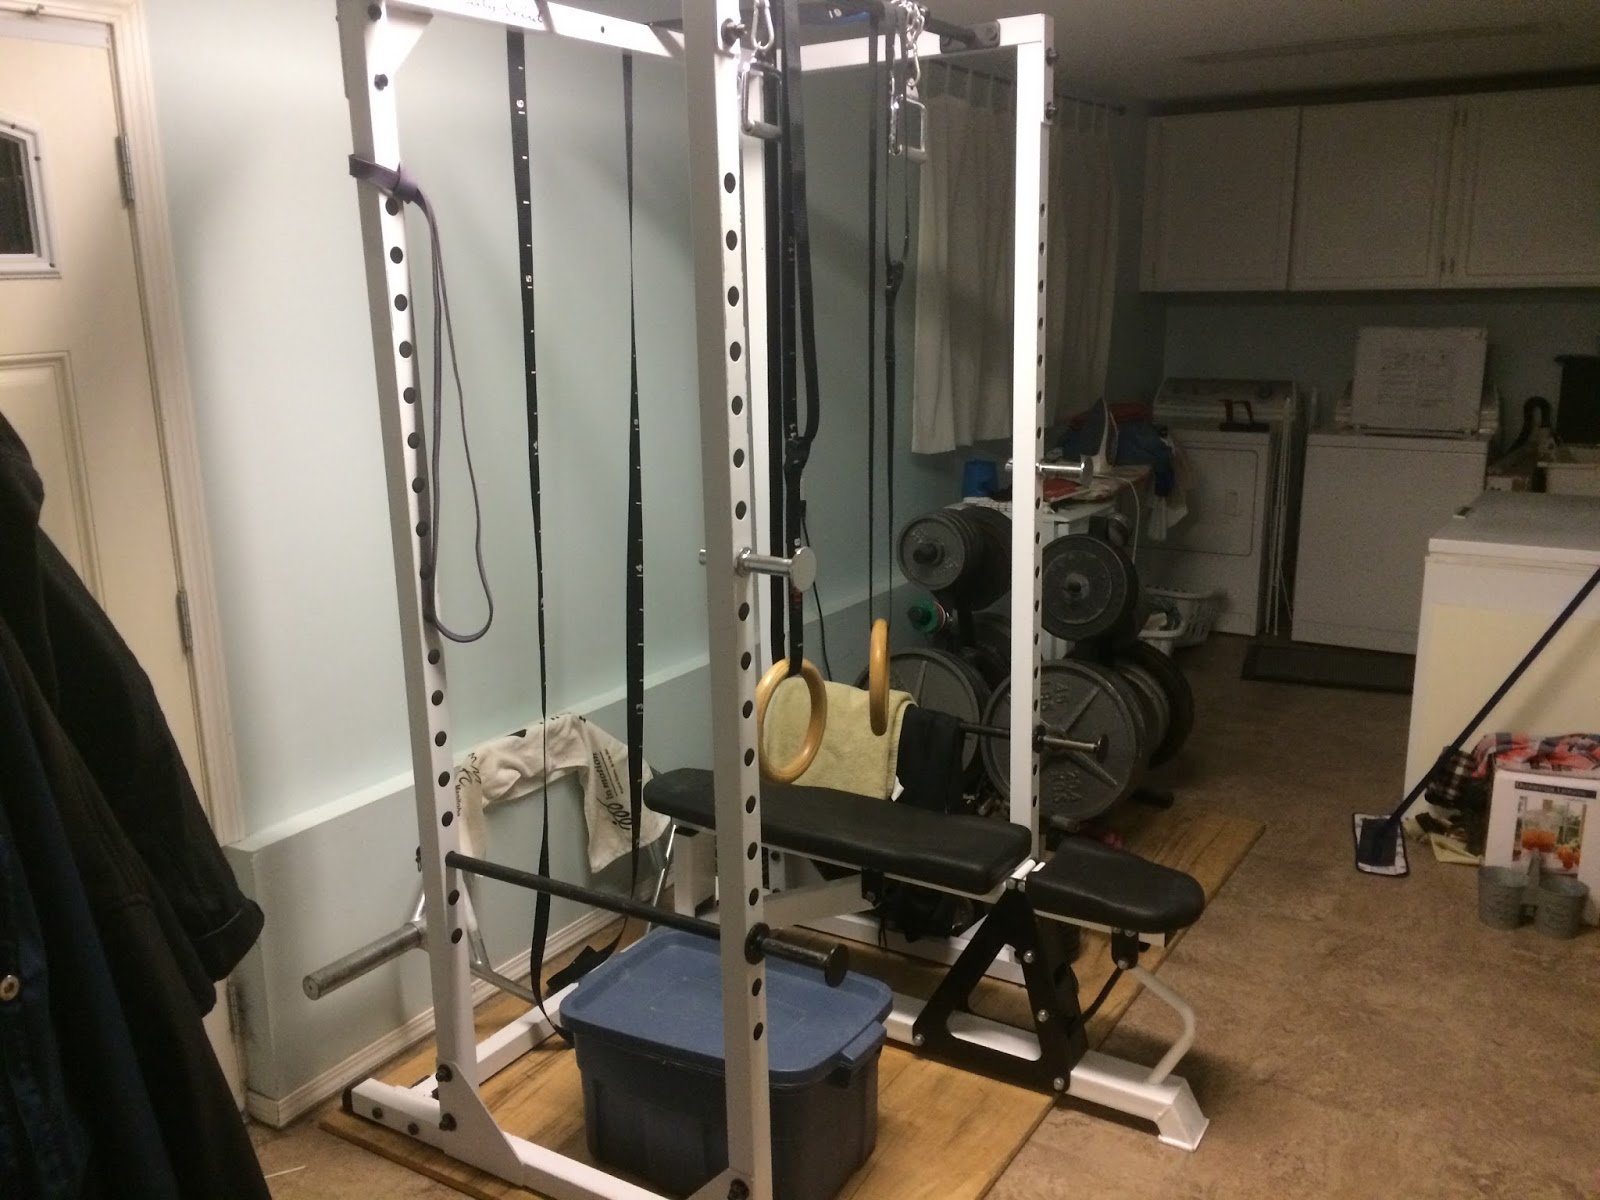 Andrew Heming S Blog Home Gym Set Up Guide Bonus Free